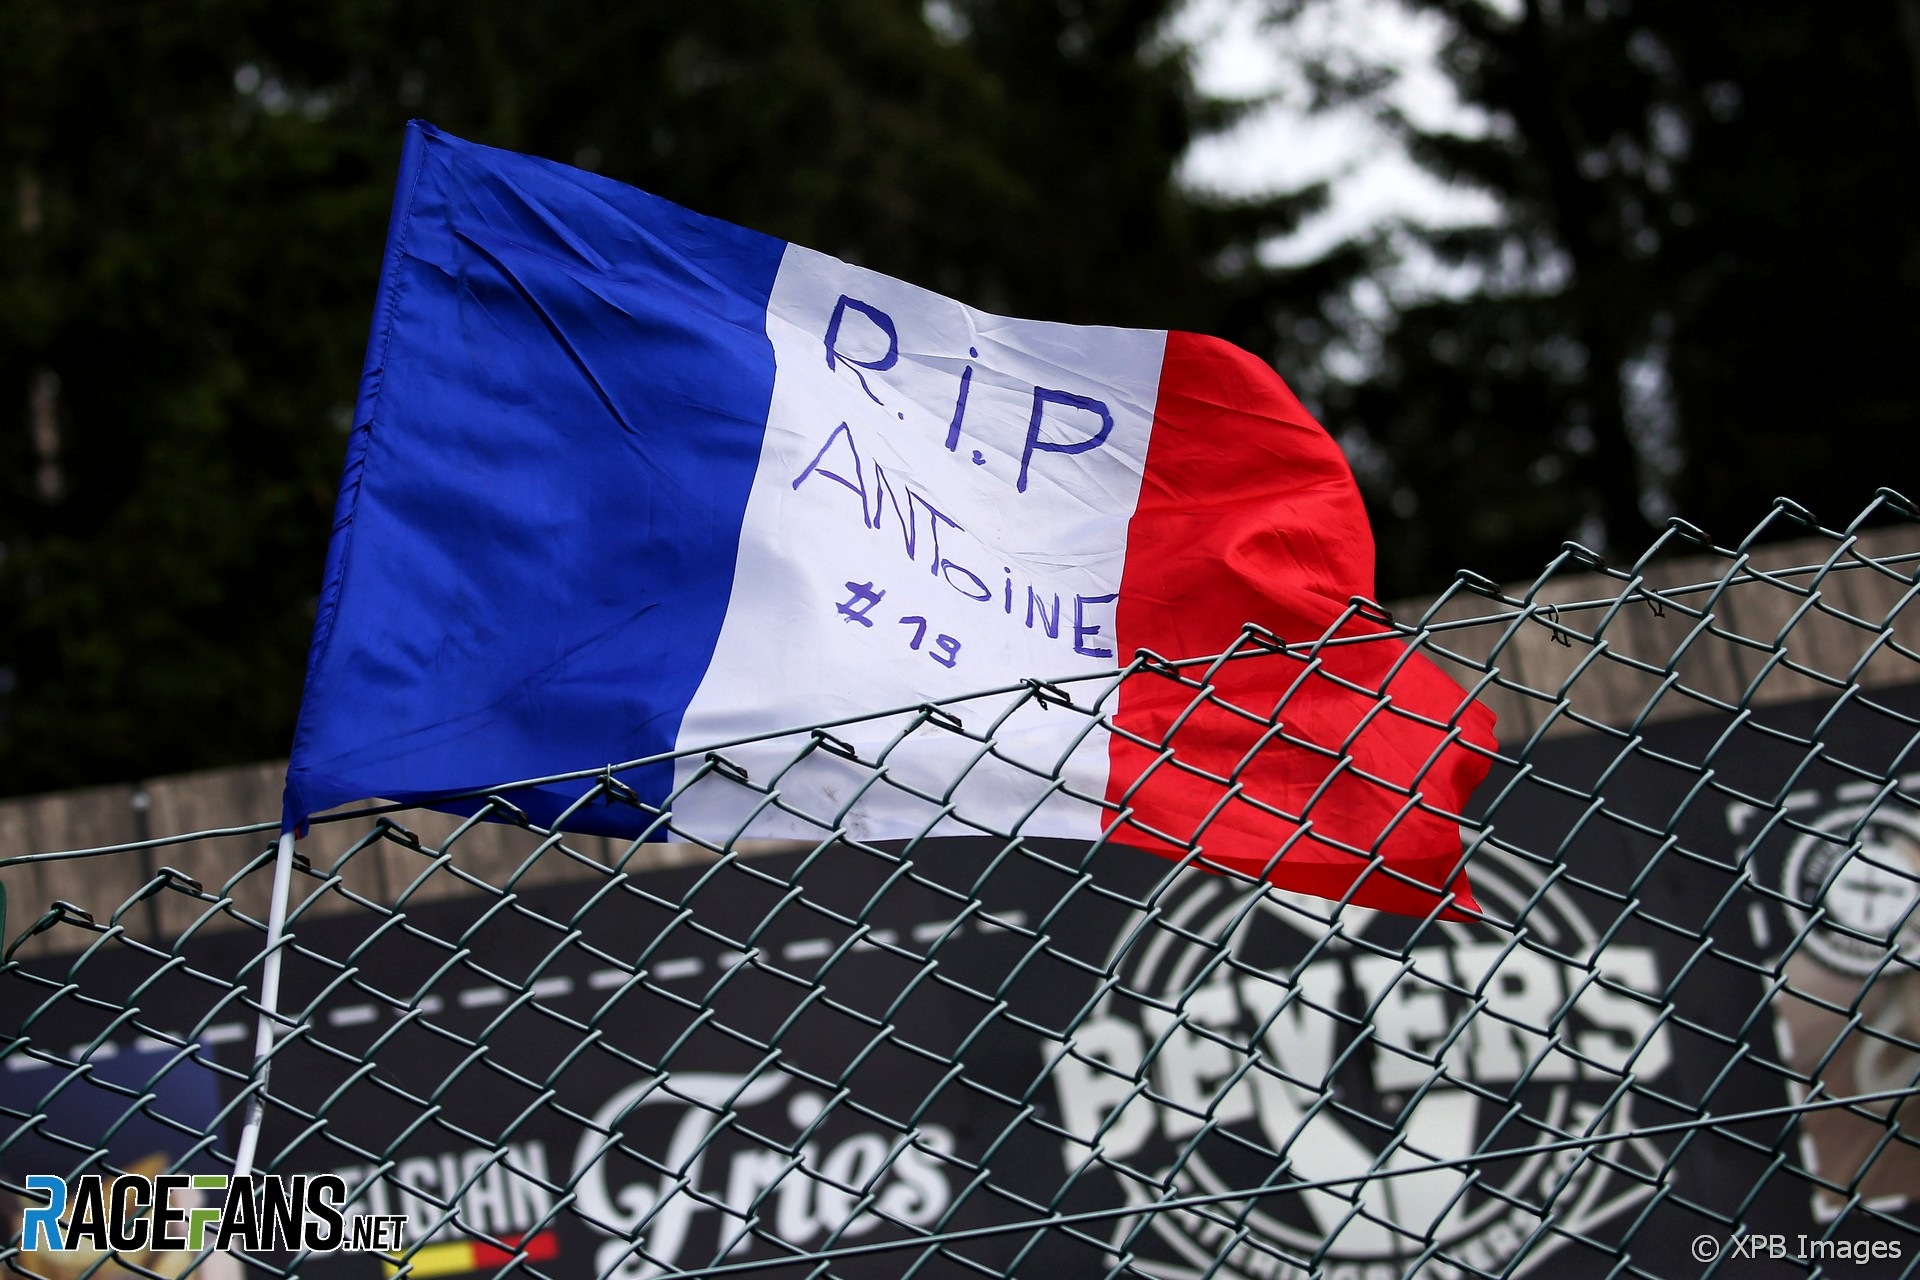 Fan's tribute to Anthoine Hubert, Spa-Francorchamps, 2019